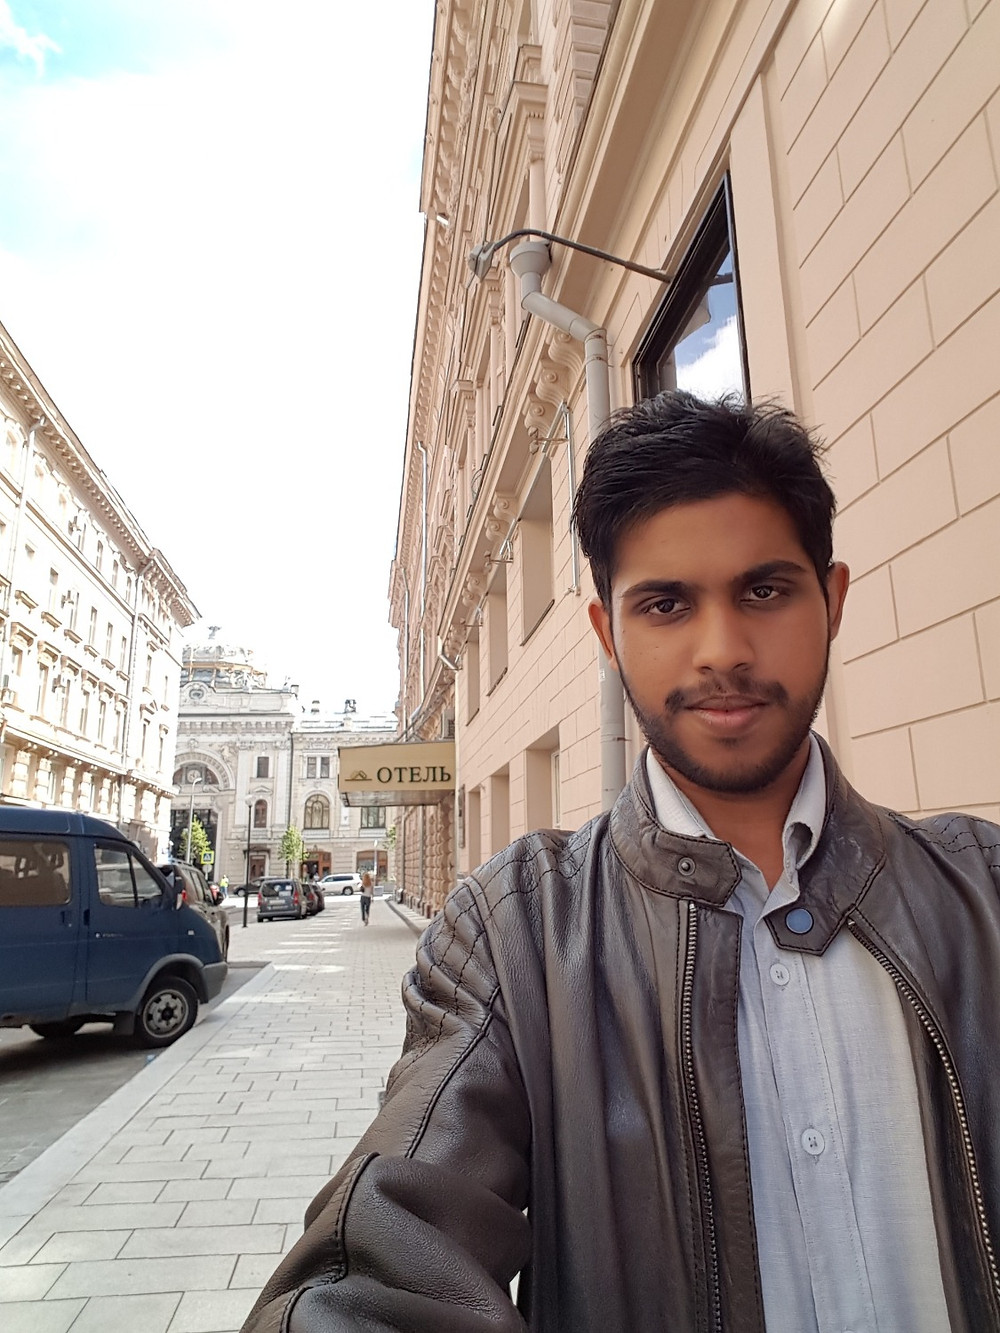 In front of the Budapest Hotel in Moscow